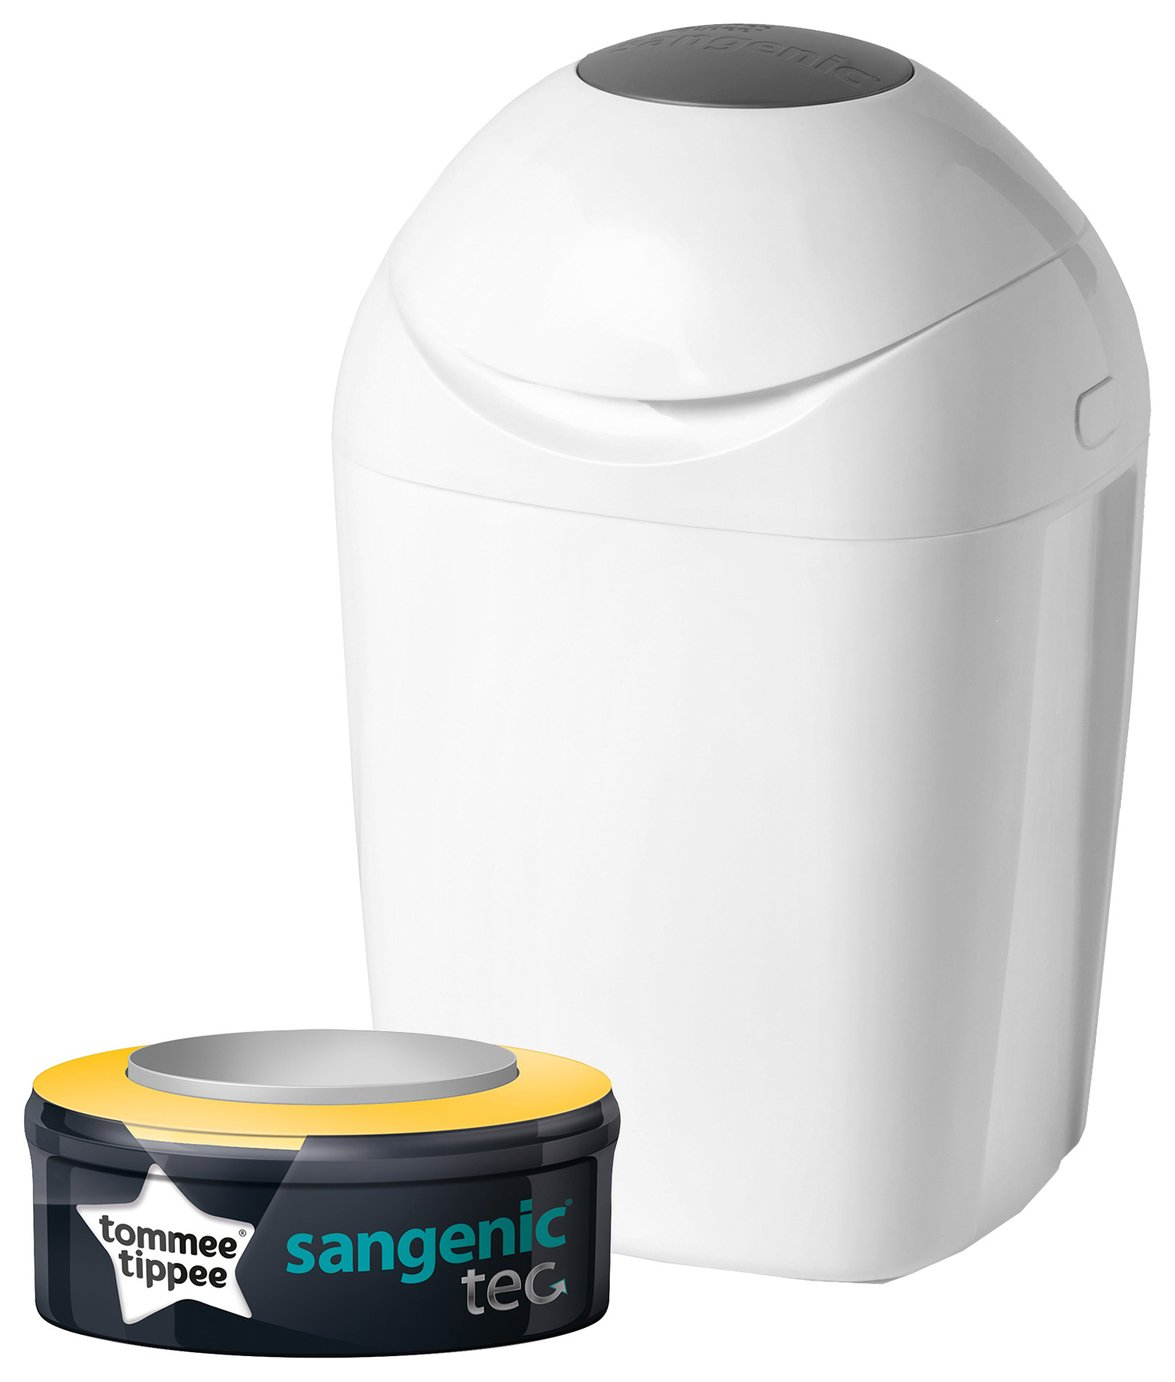 Tommee Tippee Sangenic Tec Nappy Disposal System,